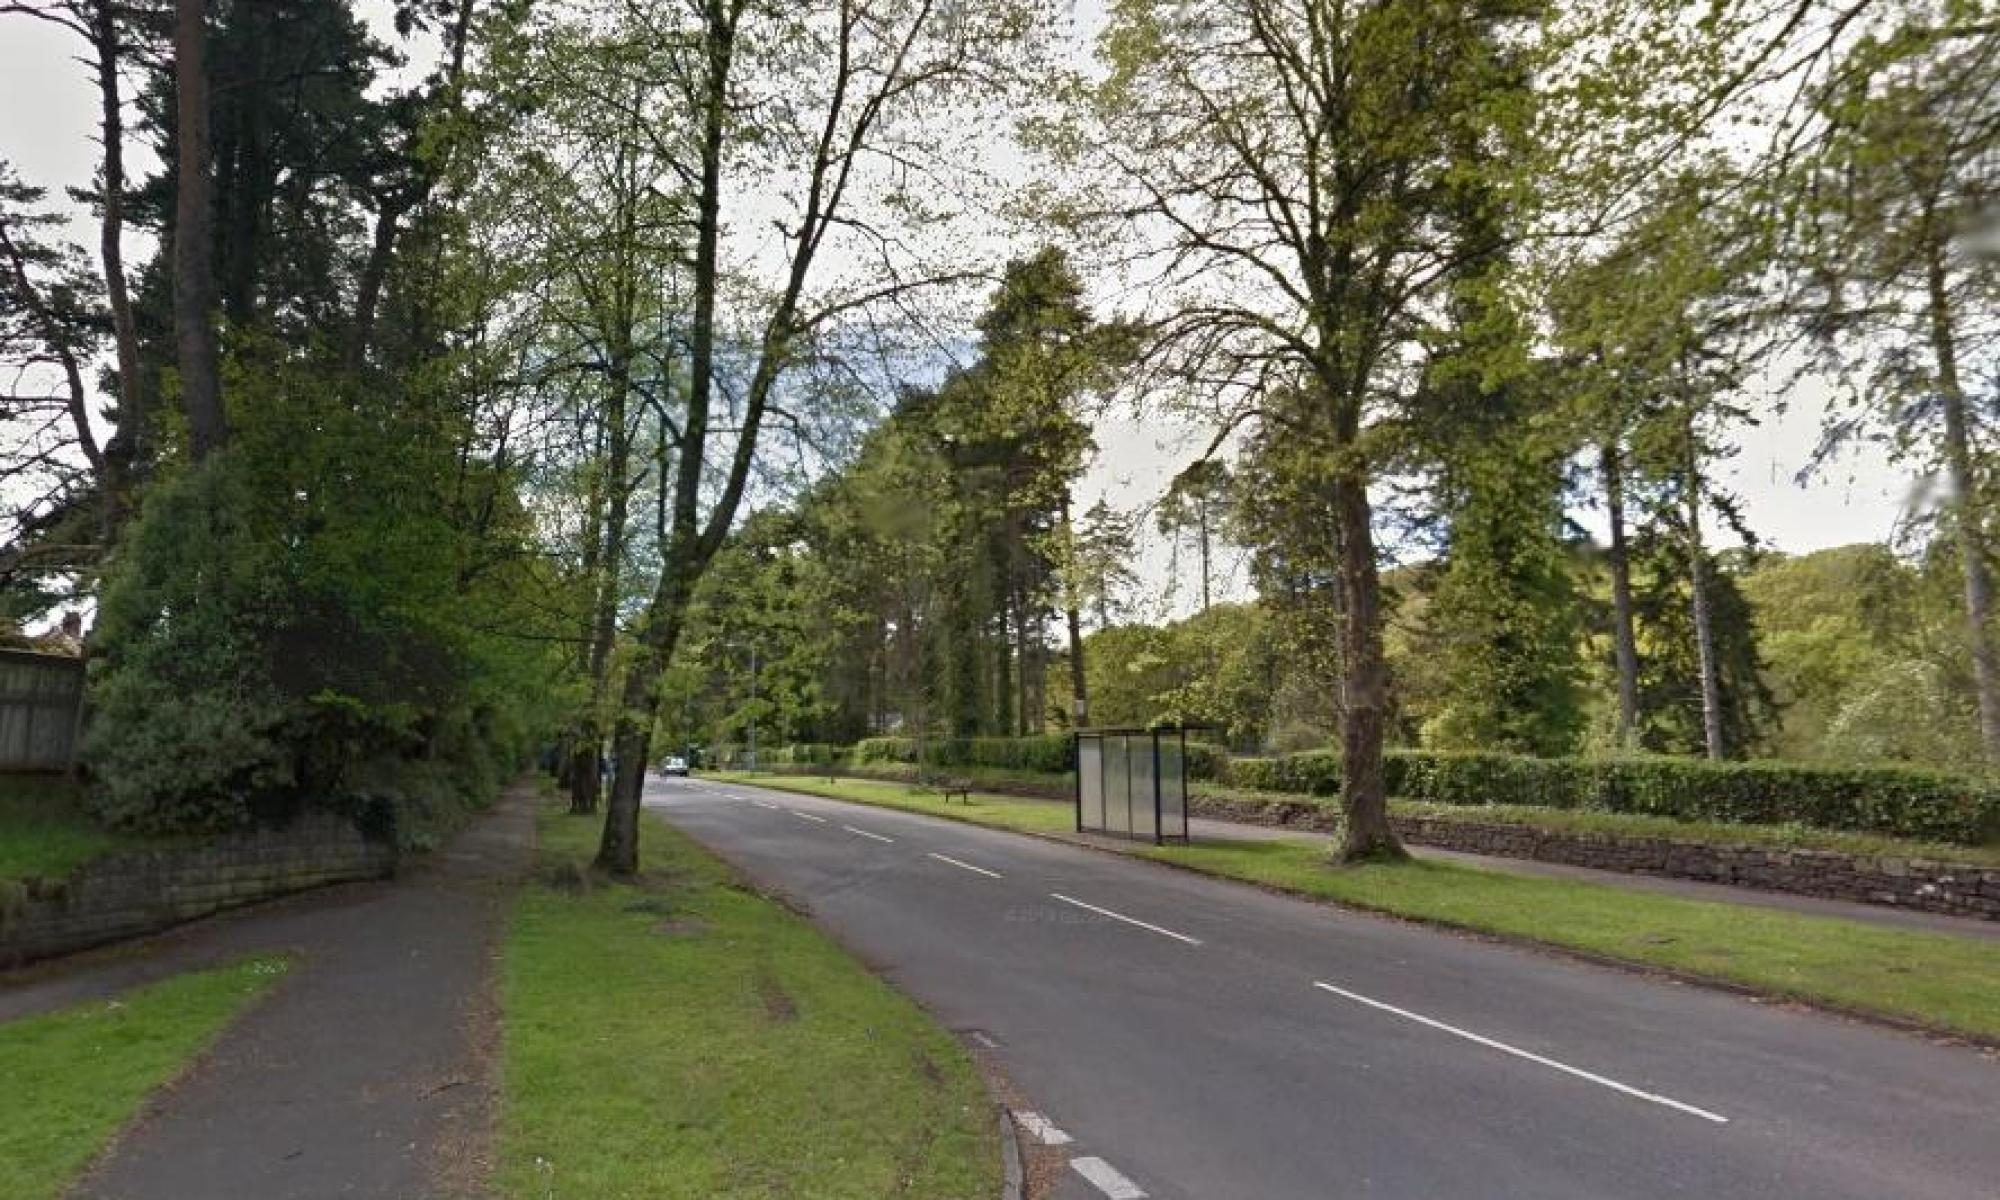 Angry residents threaten to chain themselves to trees over cycle lane